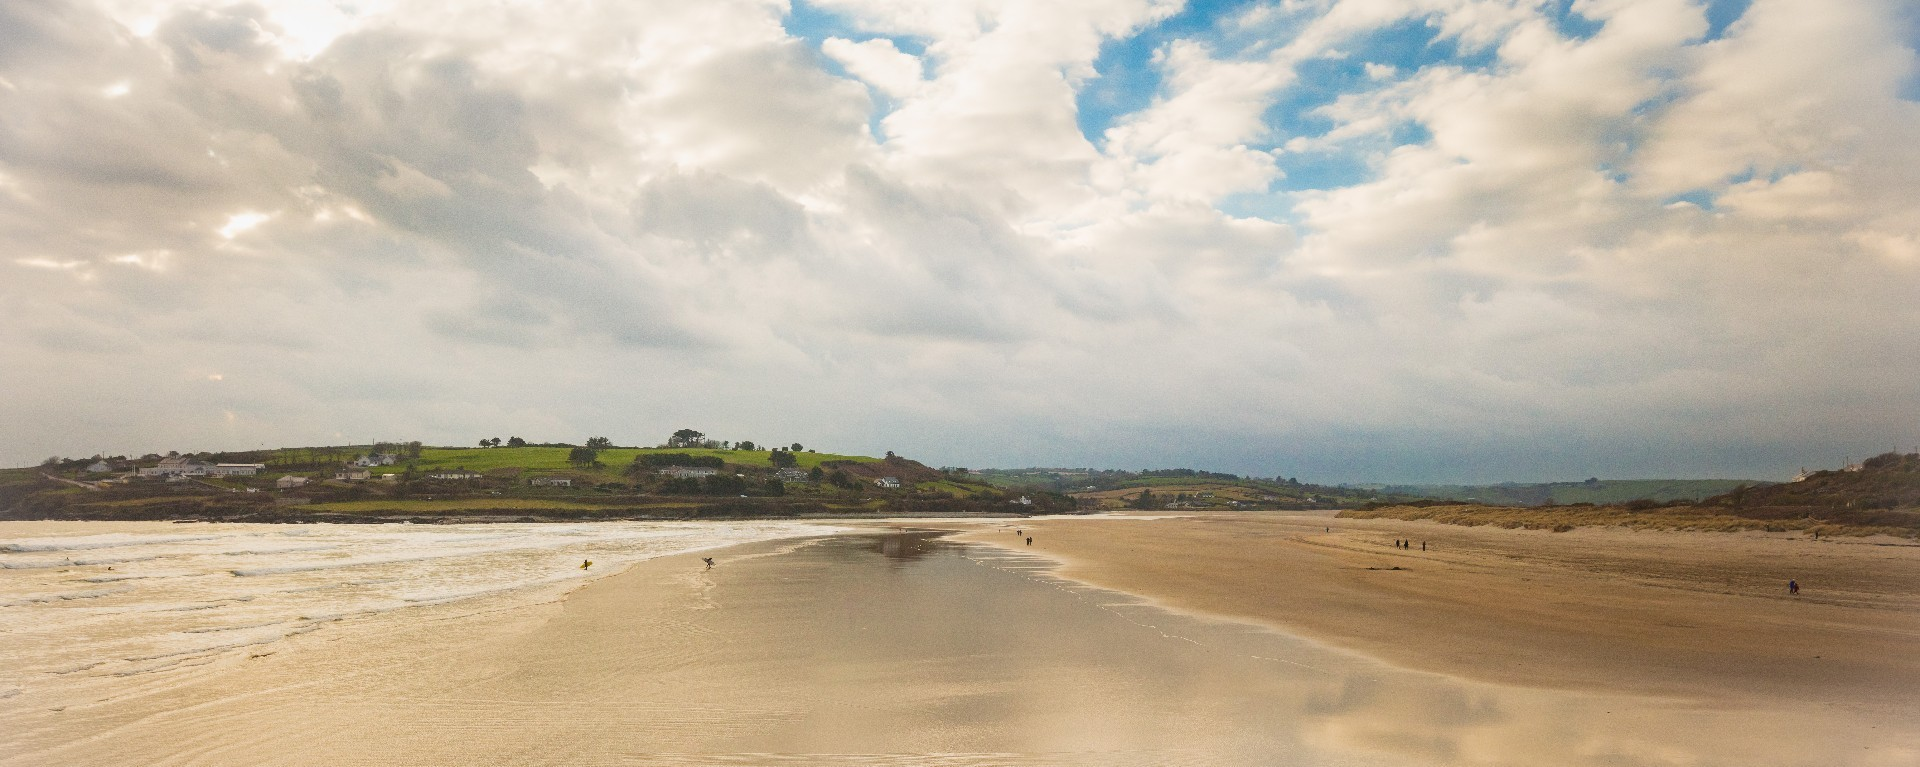 Beaches in Clonakilty, West Cork. - Clona Holiday Homes